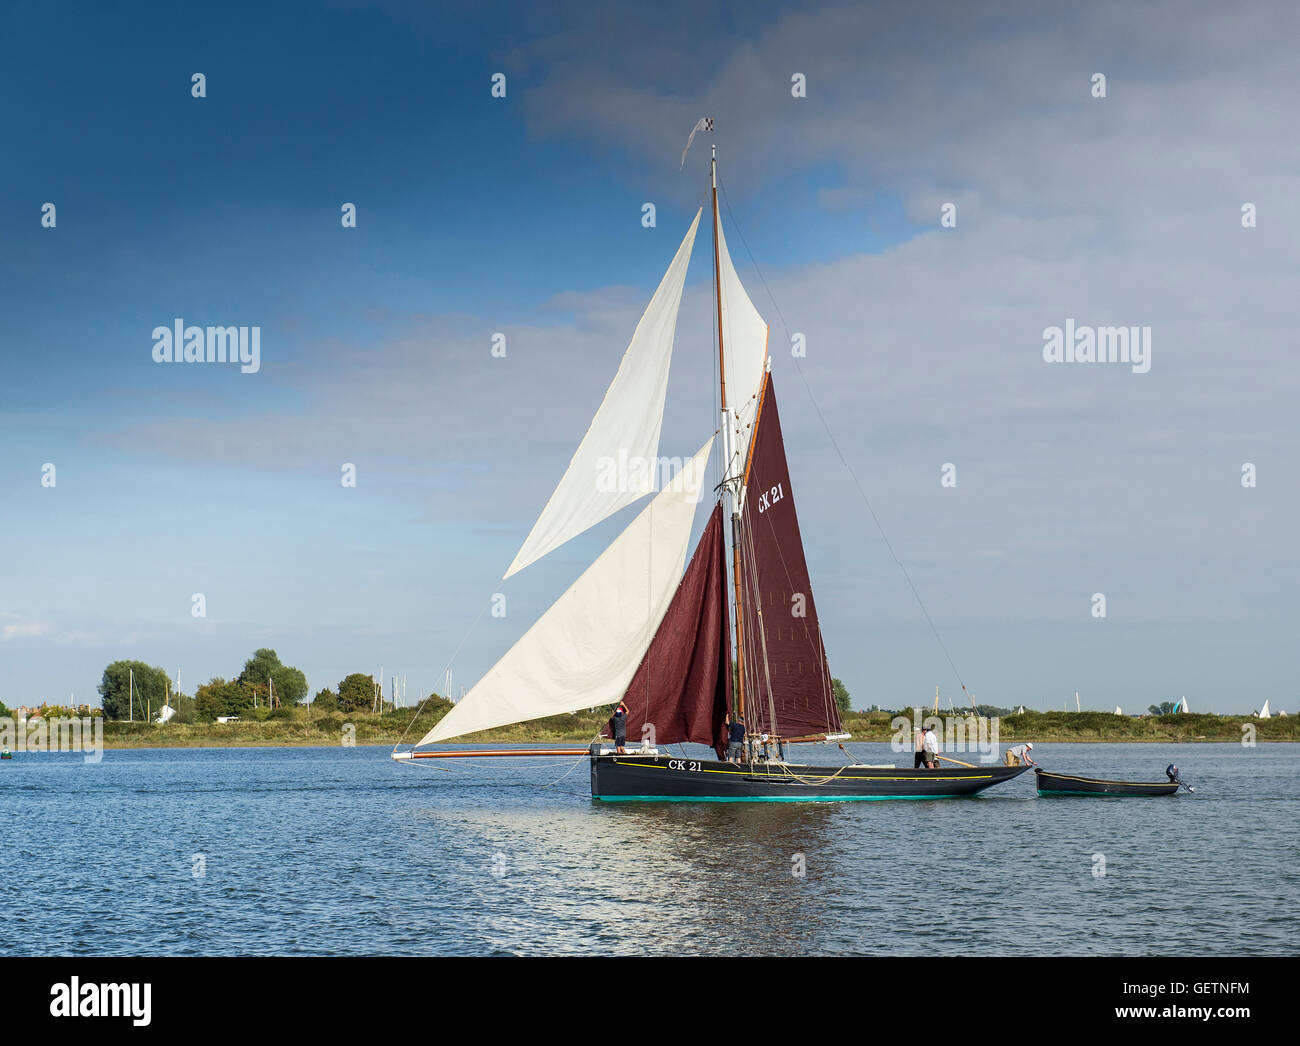 An historic gaff rigged East Coast fishing smack on the Blackwater River in Essex. - Stock Image